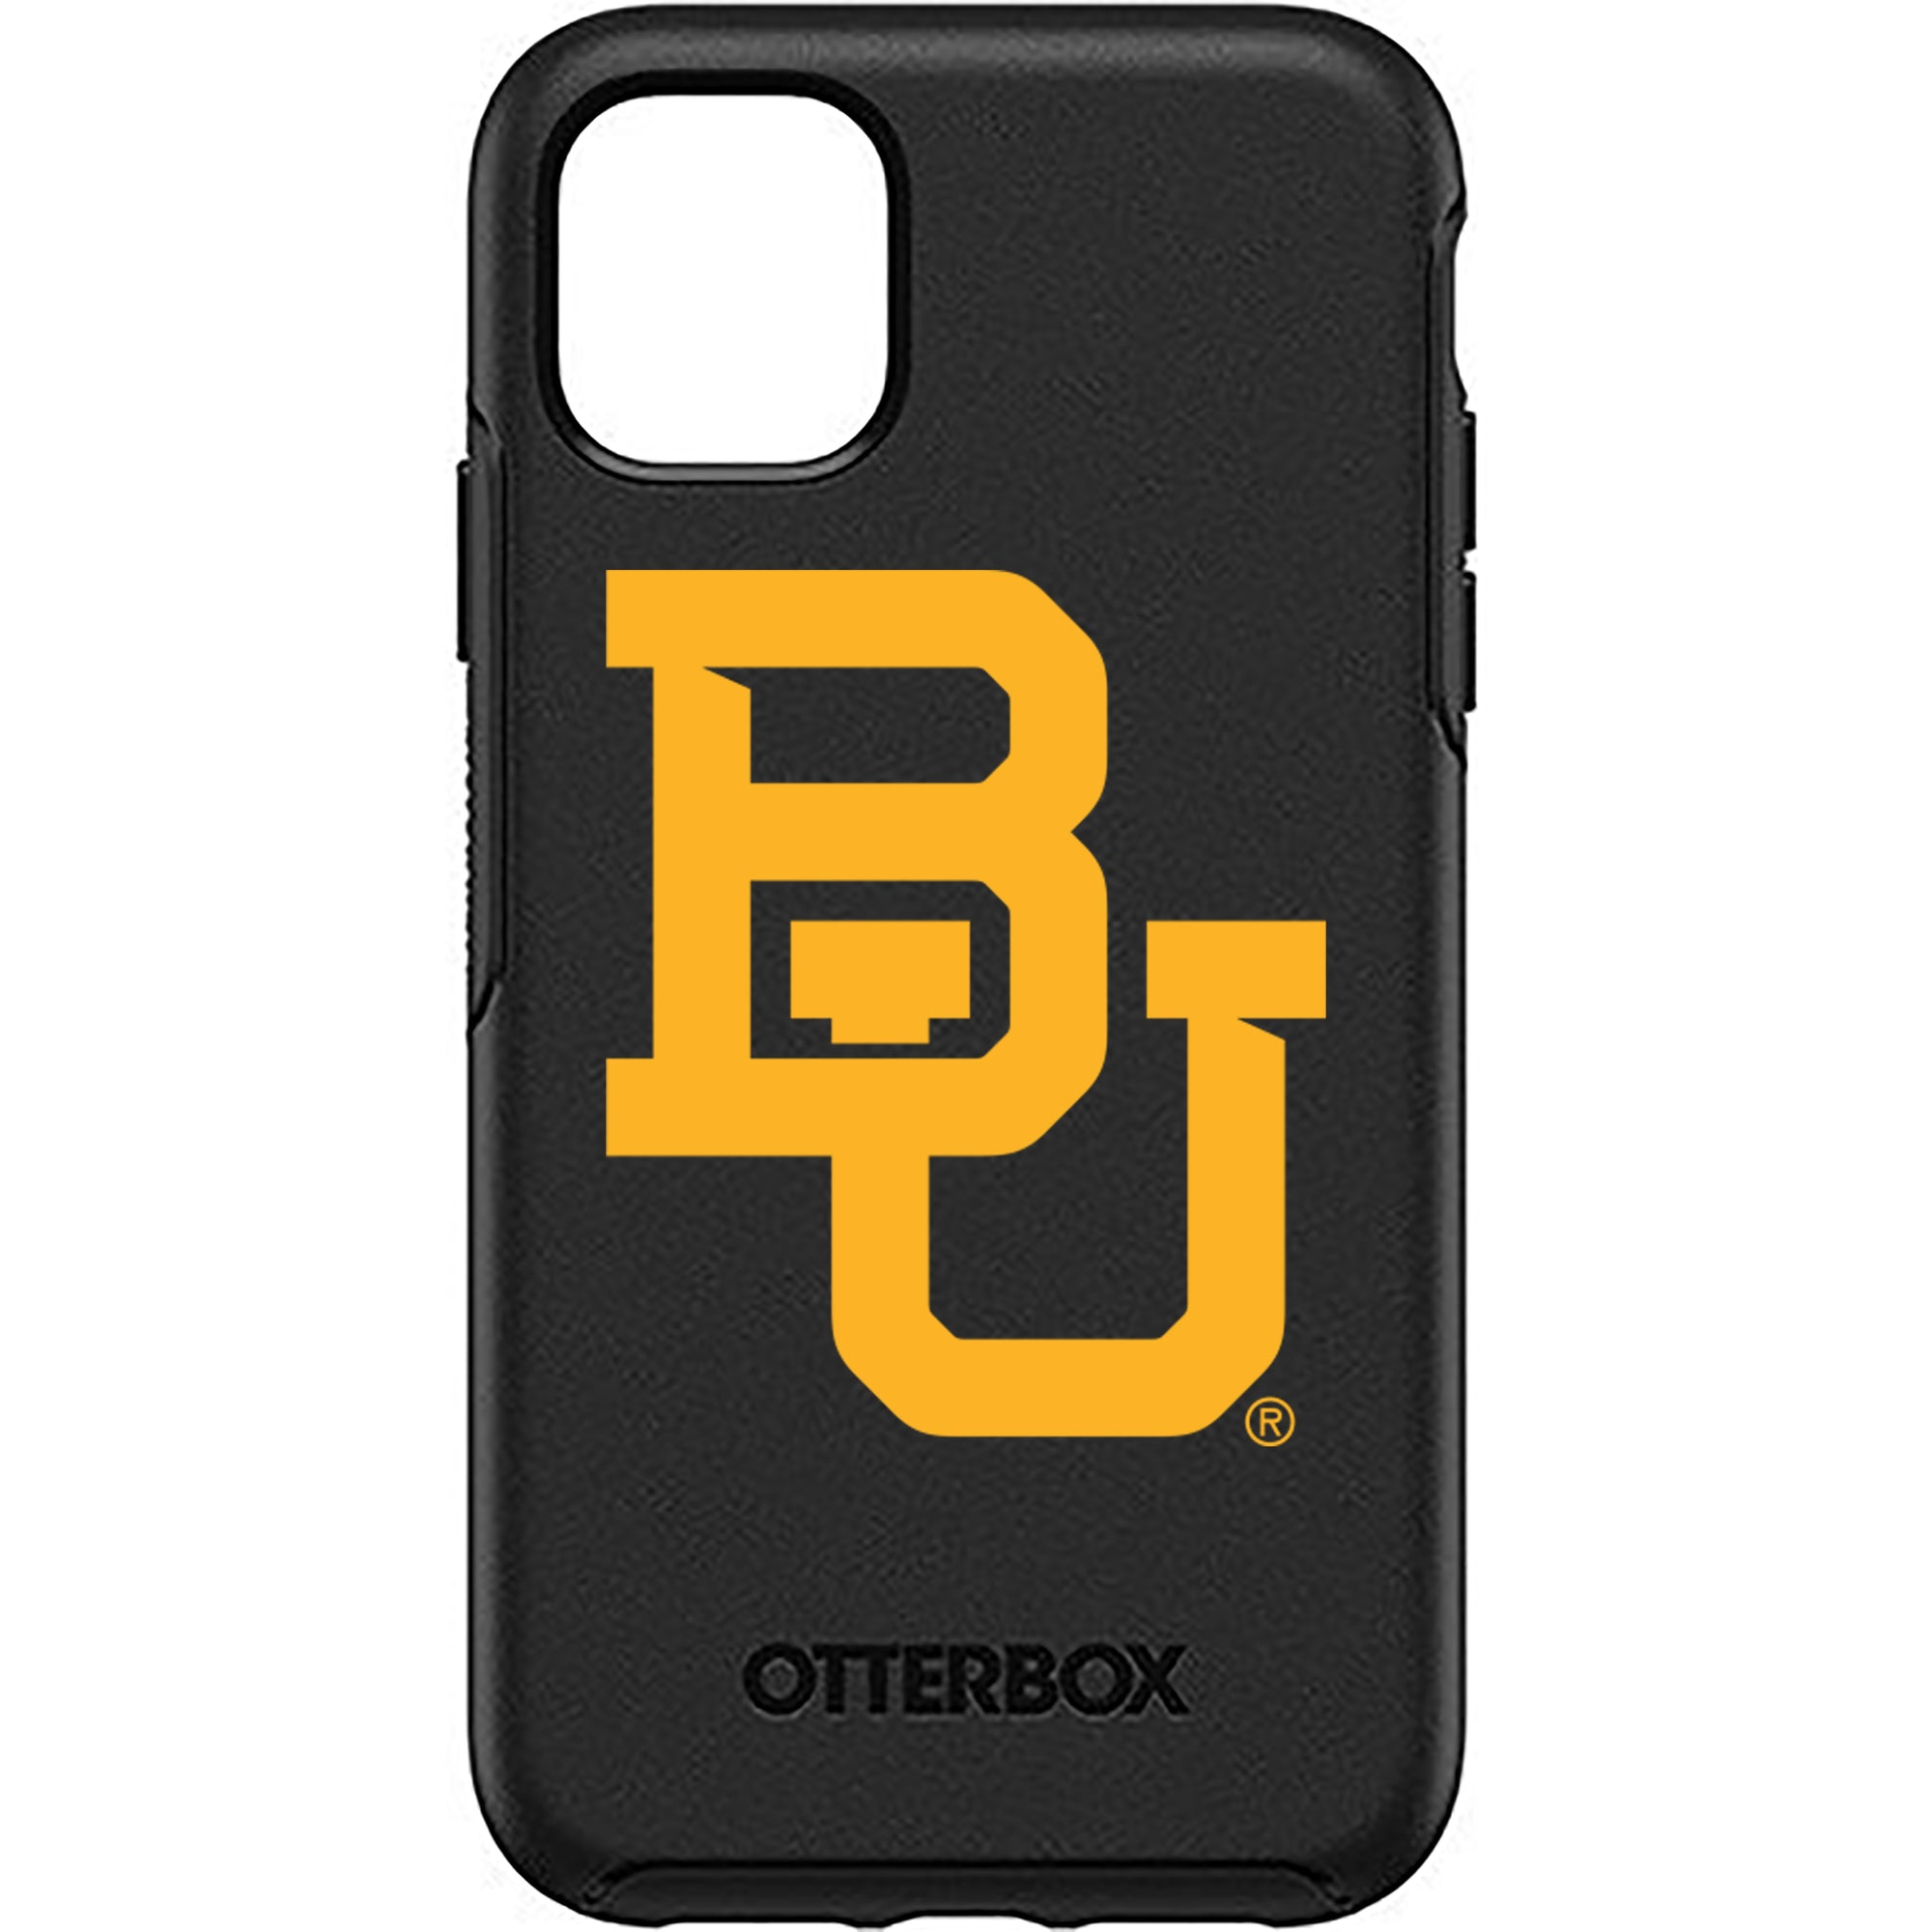 Baylor Bears Otterbox Symmetry Case (for iPhone 11, Pro, Pro Max)